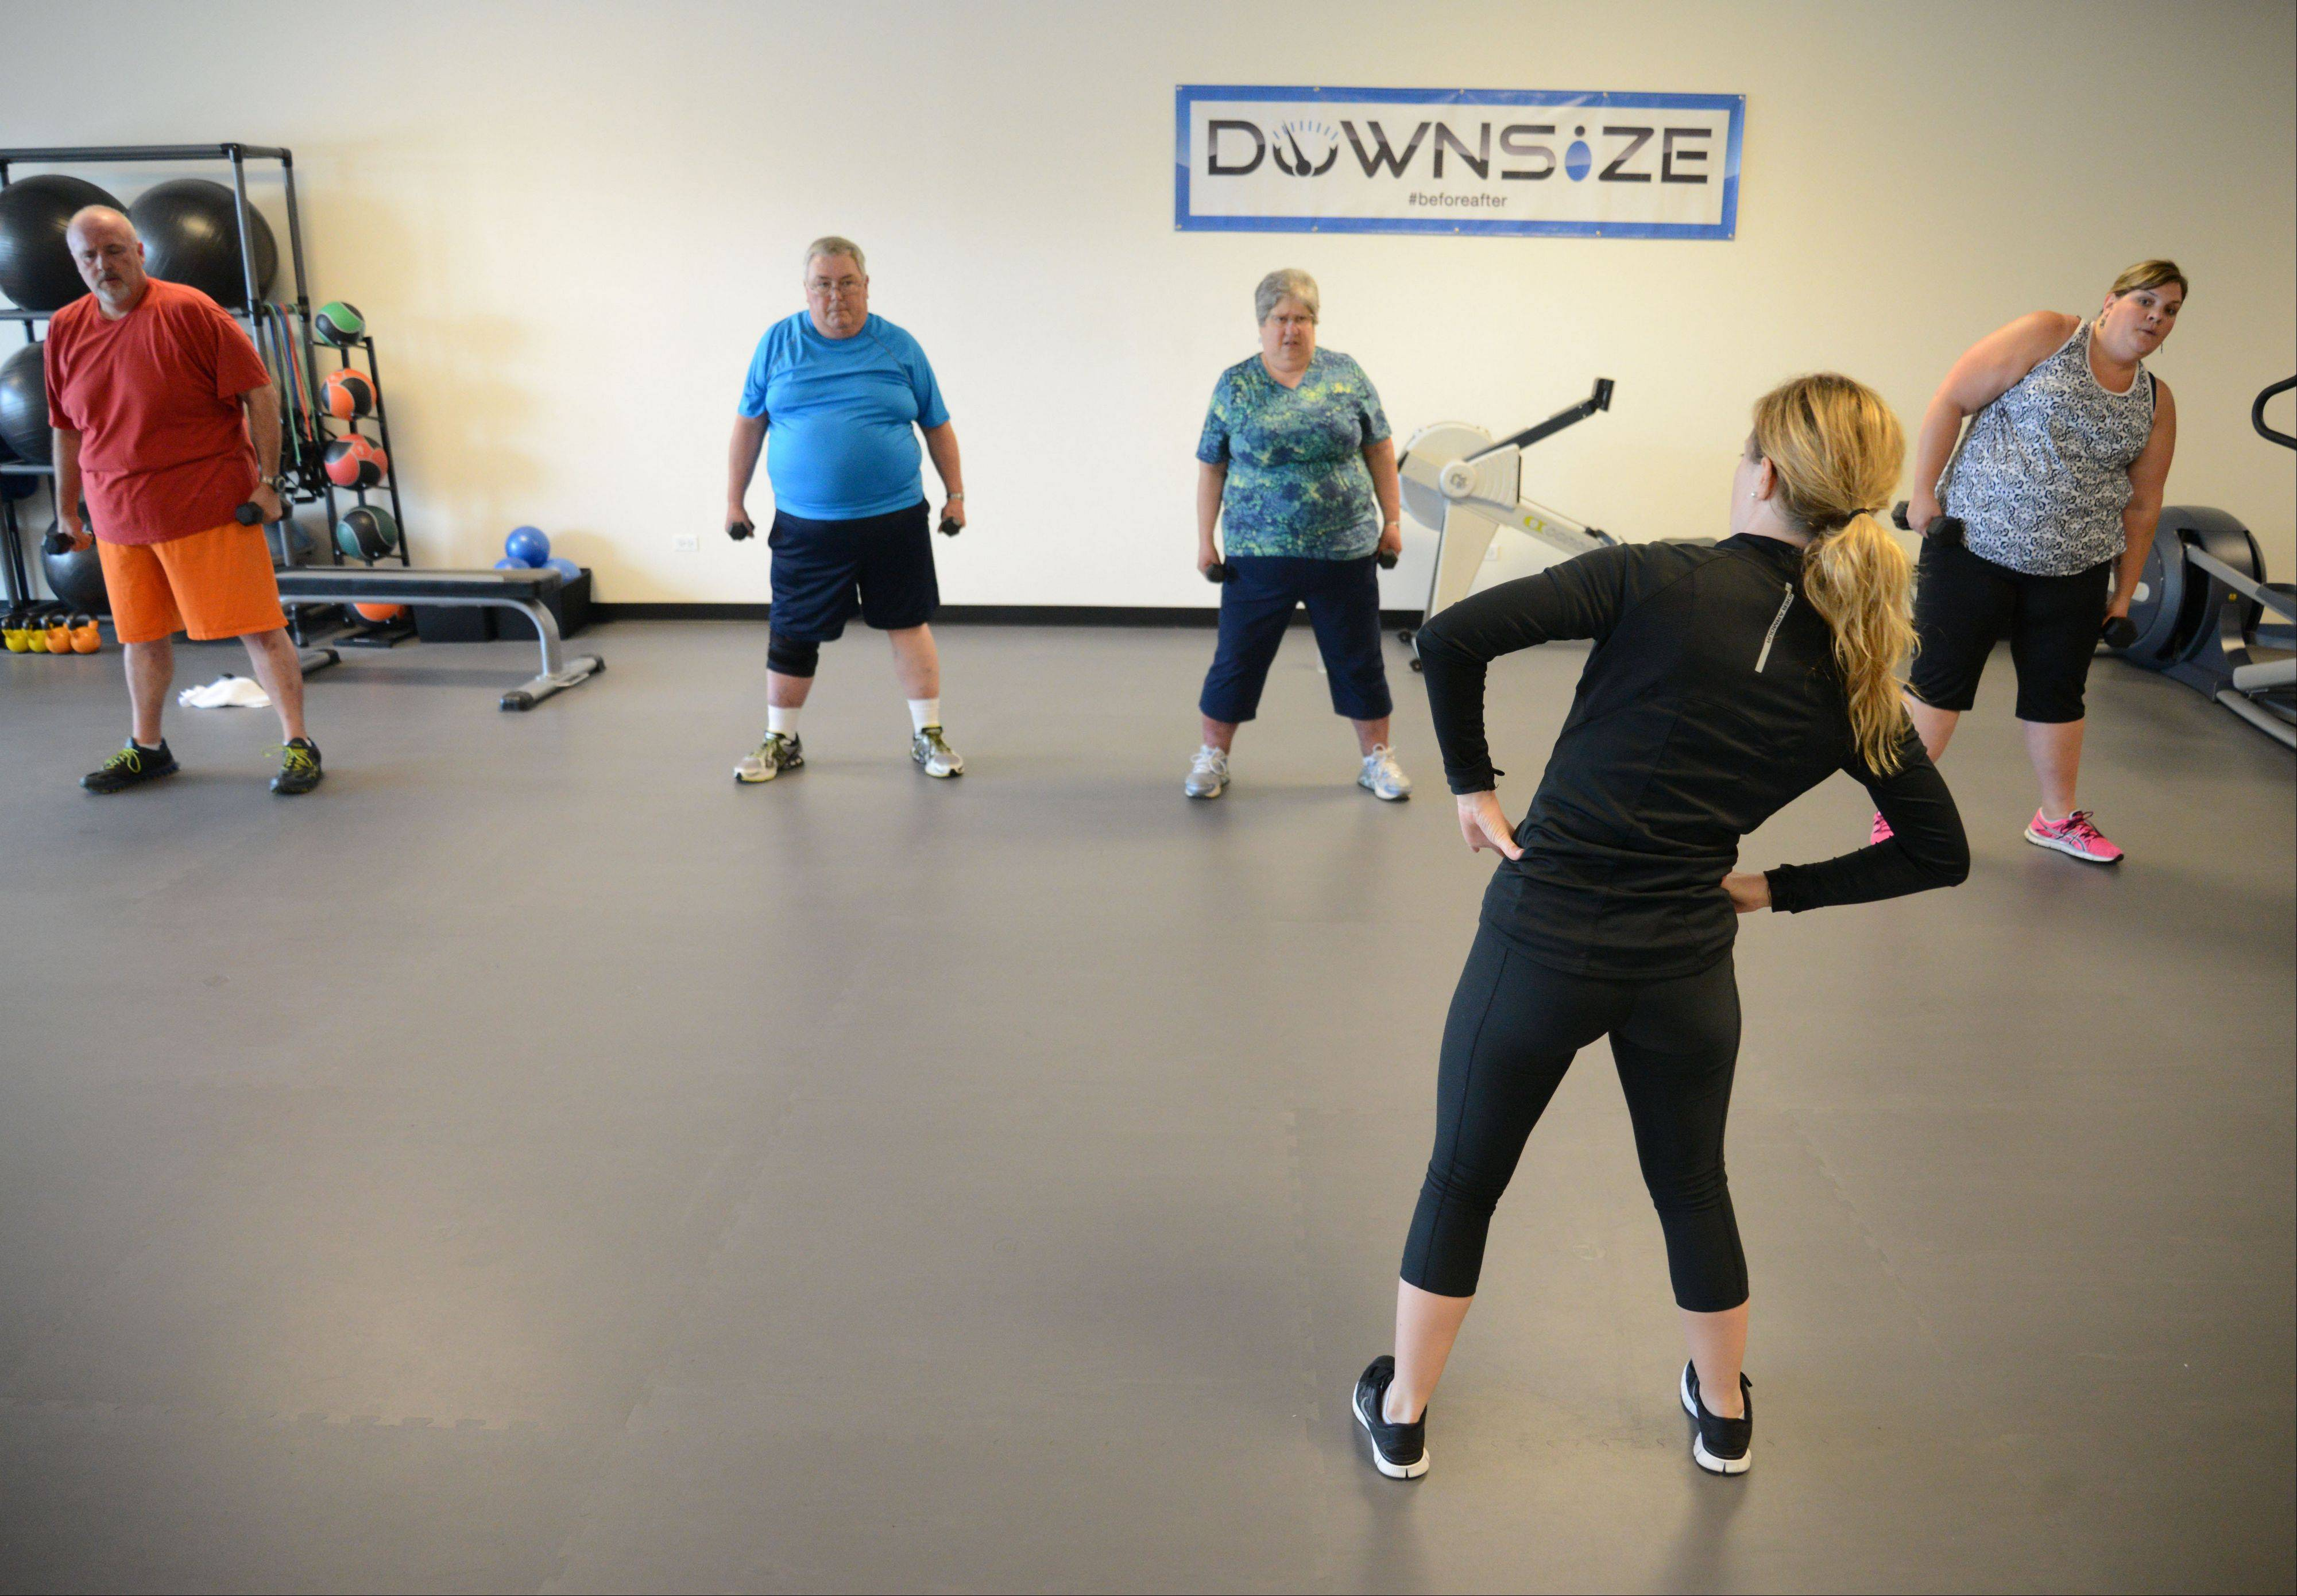 Jillian McAfee, general manager of Downsize Fitness in Naperville, leads a small group at the new gym for people who have at least 50 pounds to lose.